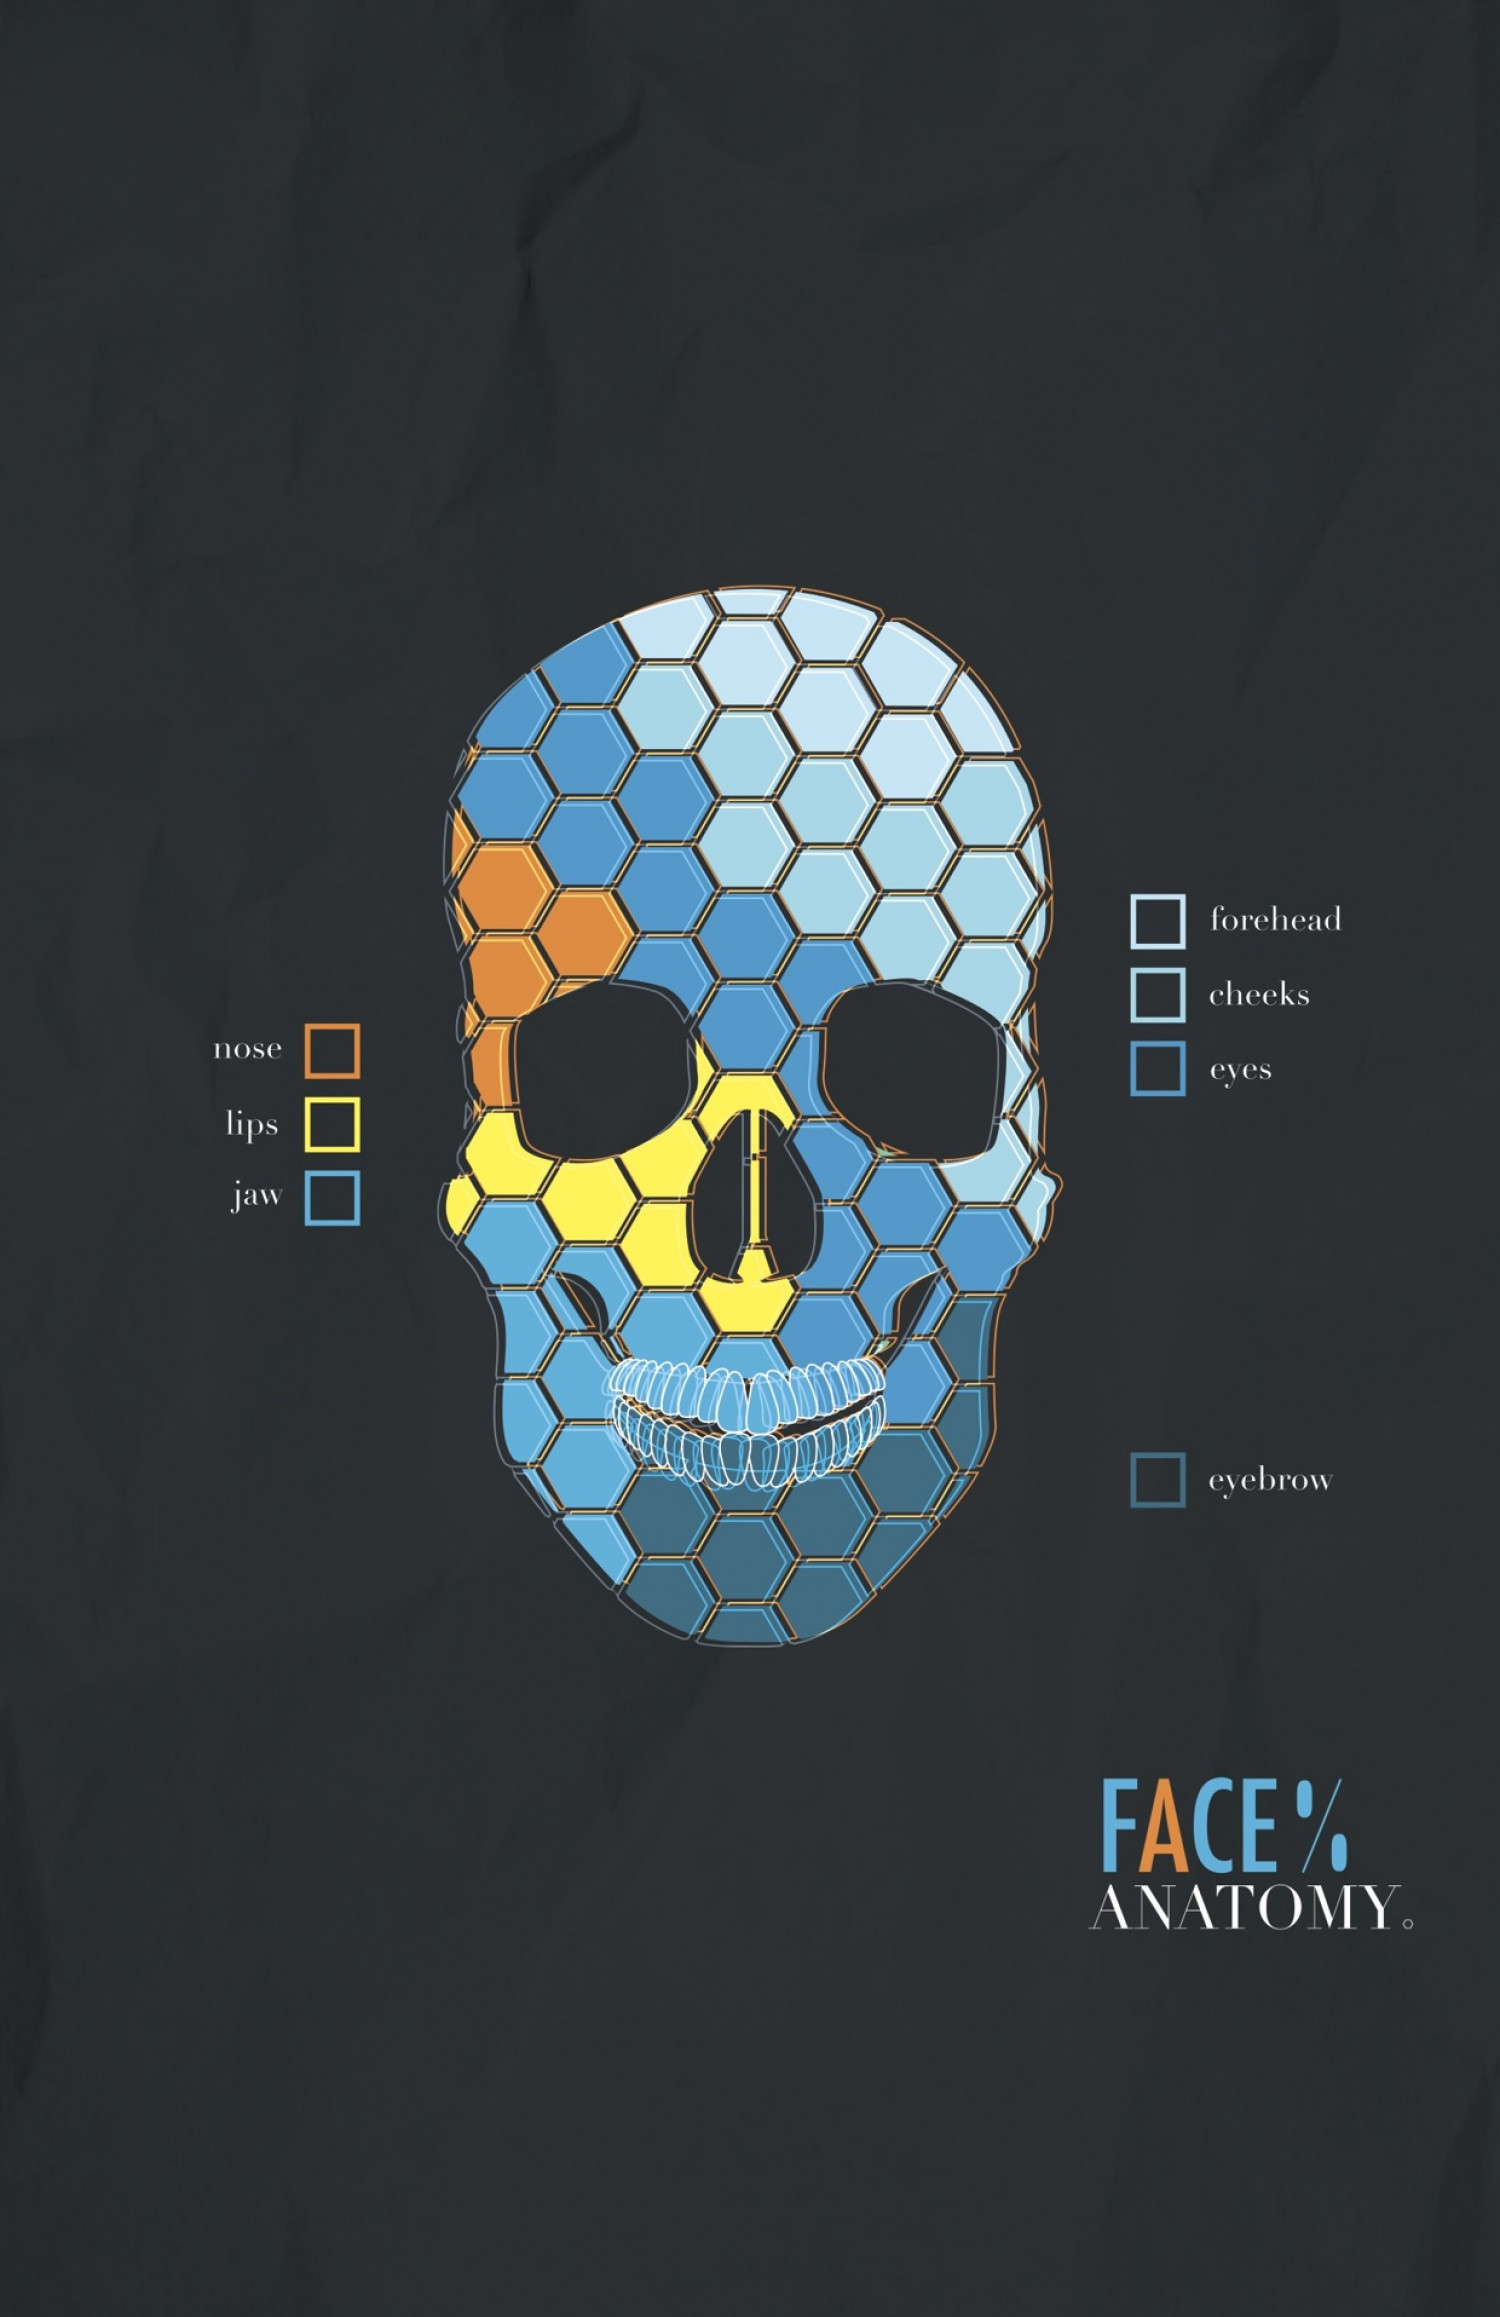 FACE% Anatomy Infographic